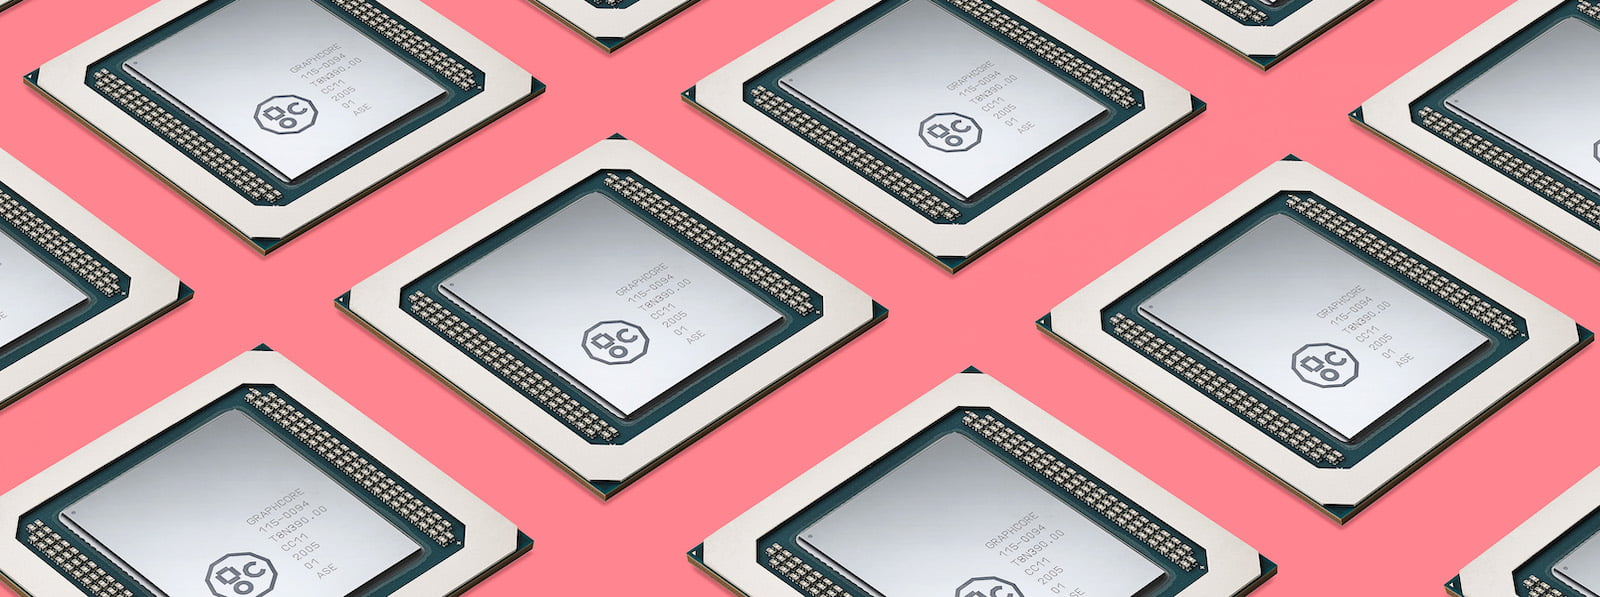 Future of AI chips lies in software_compressed